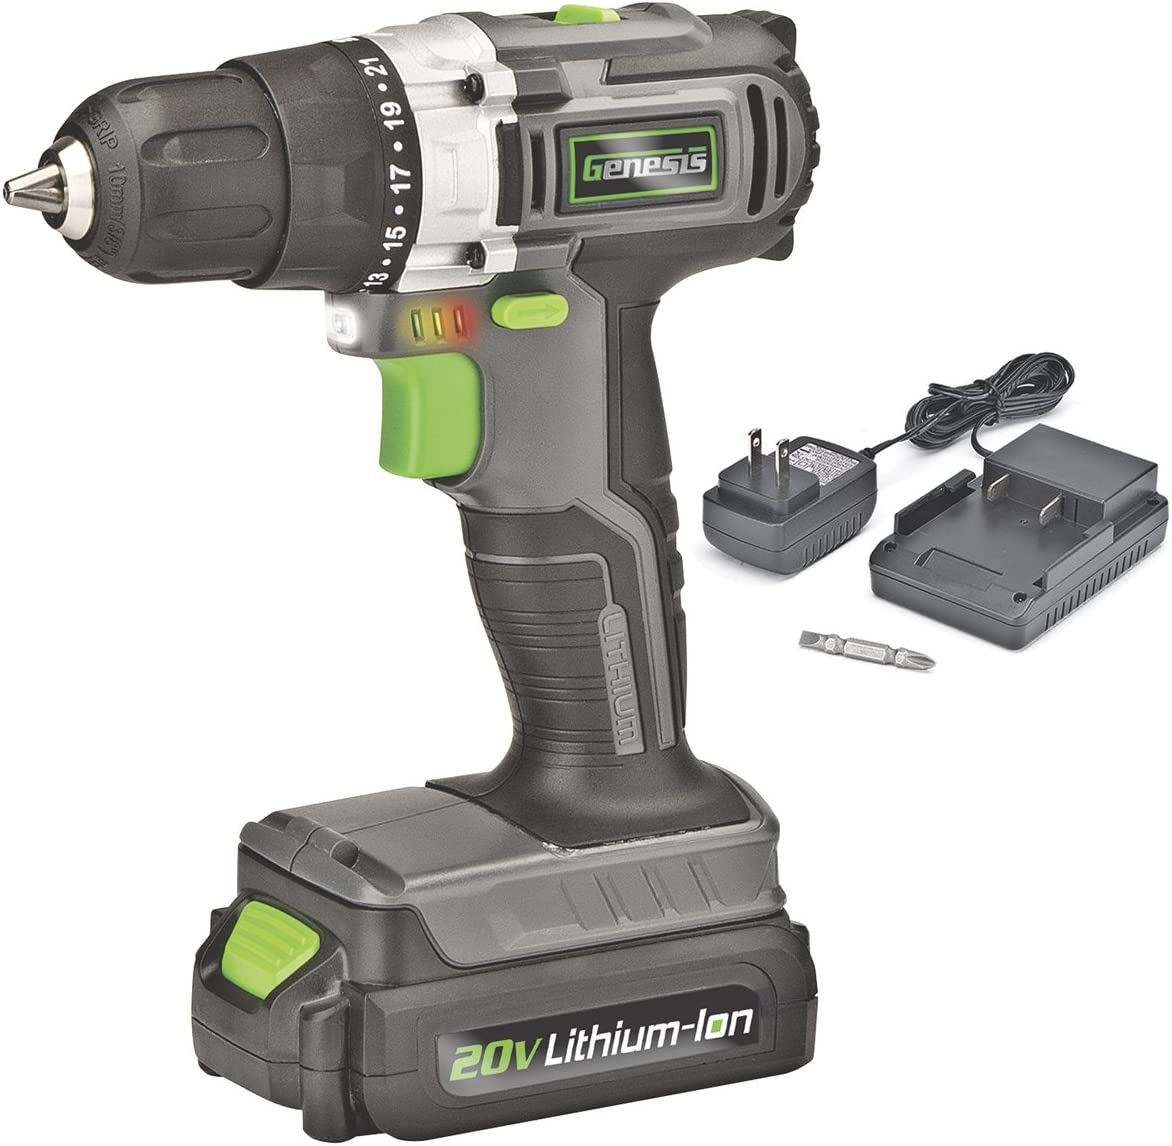 Genesis GLCD2038A 20V Lithium-ion Cordless Drill Driver, Grey Black Green, 3 8